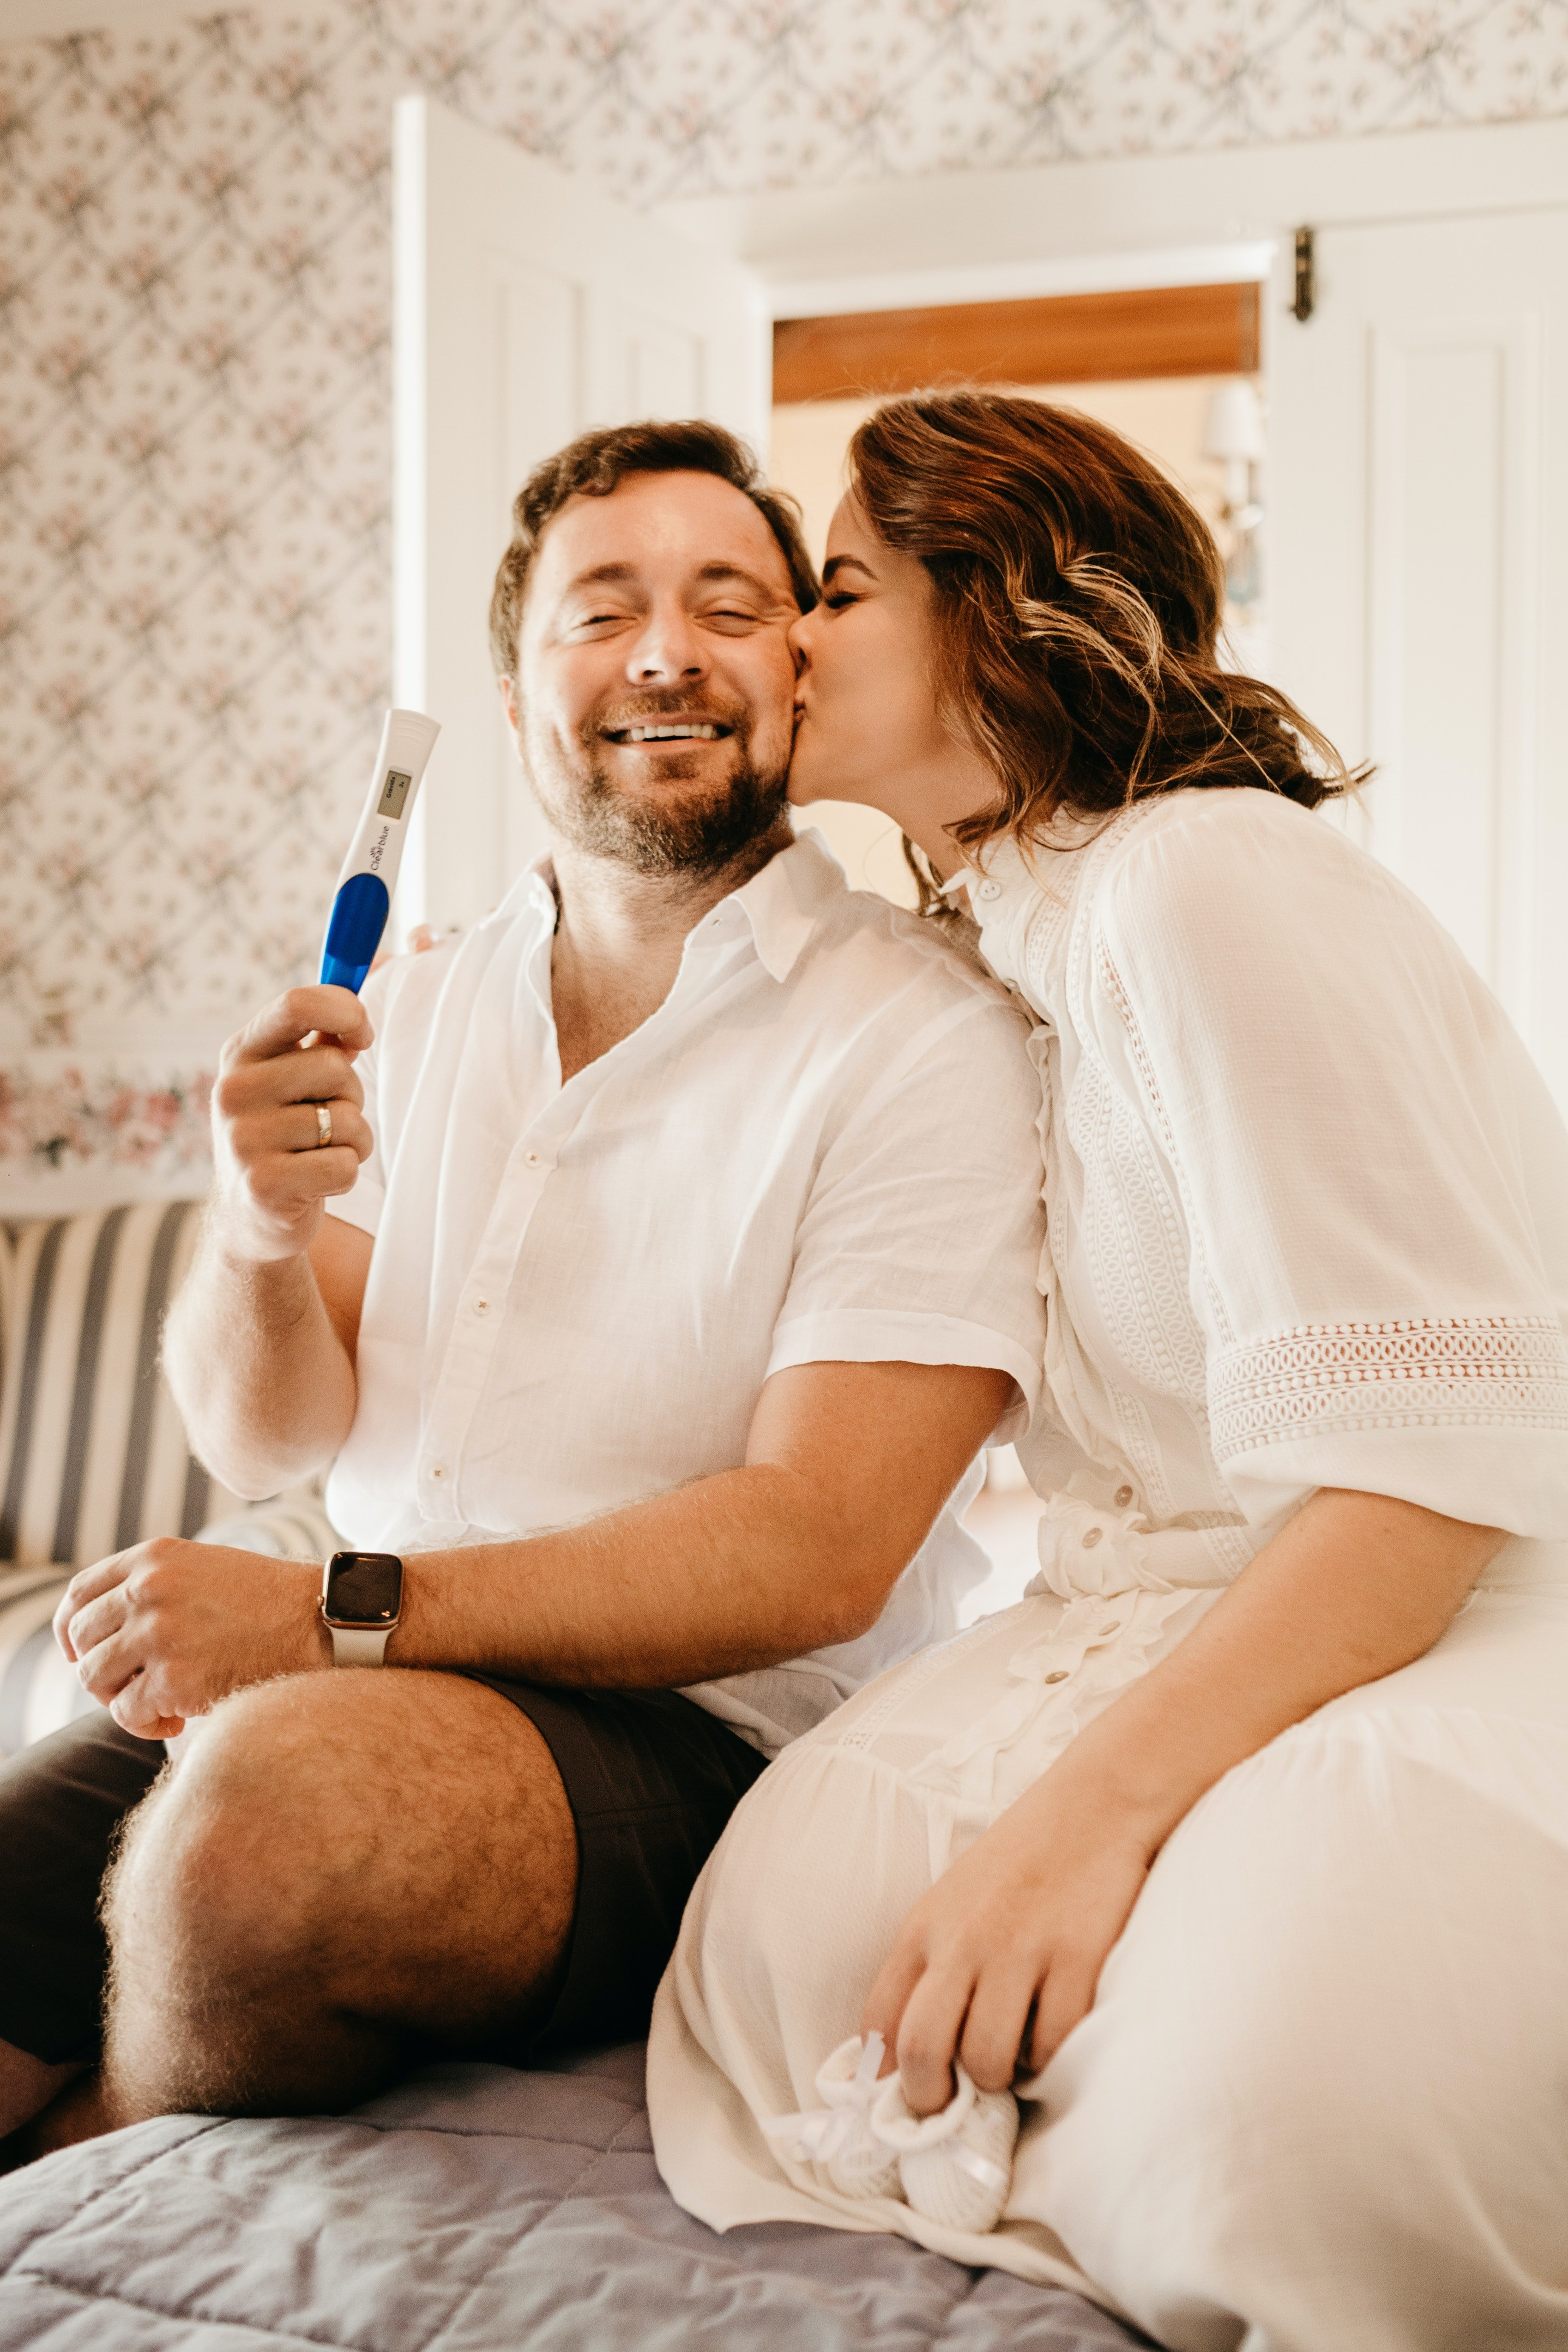 Wife reveals she's pregnant and her husband is overly excited | Photo: Unsplash/jonathanborba